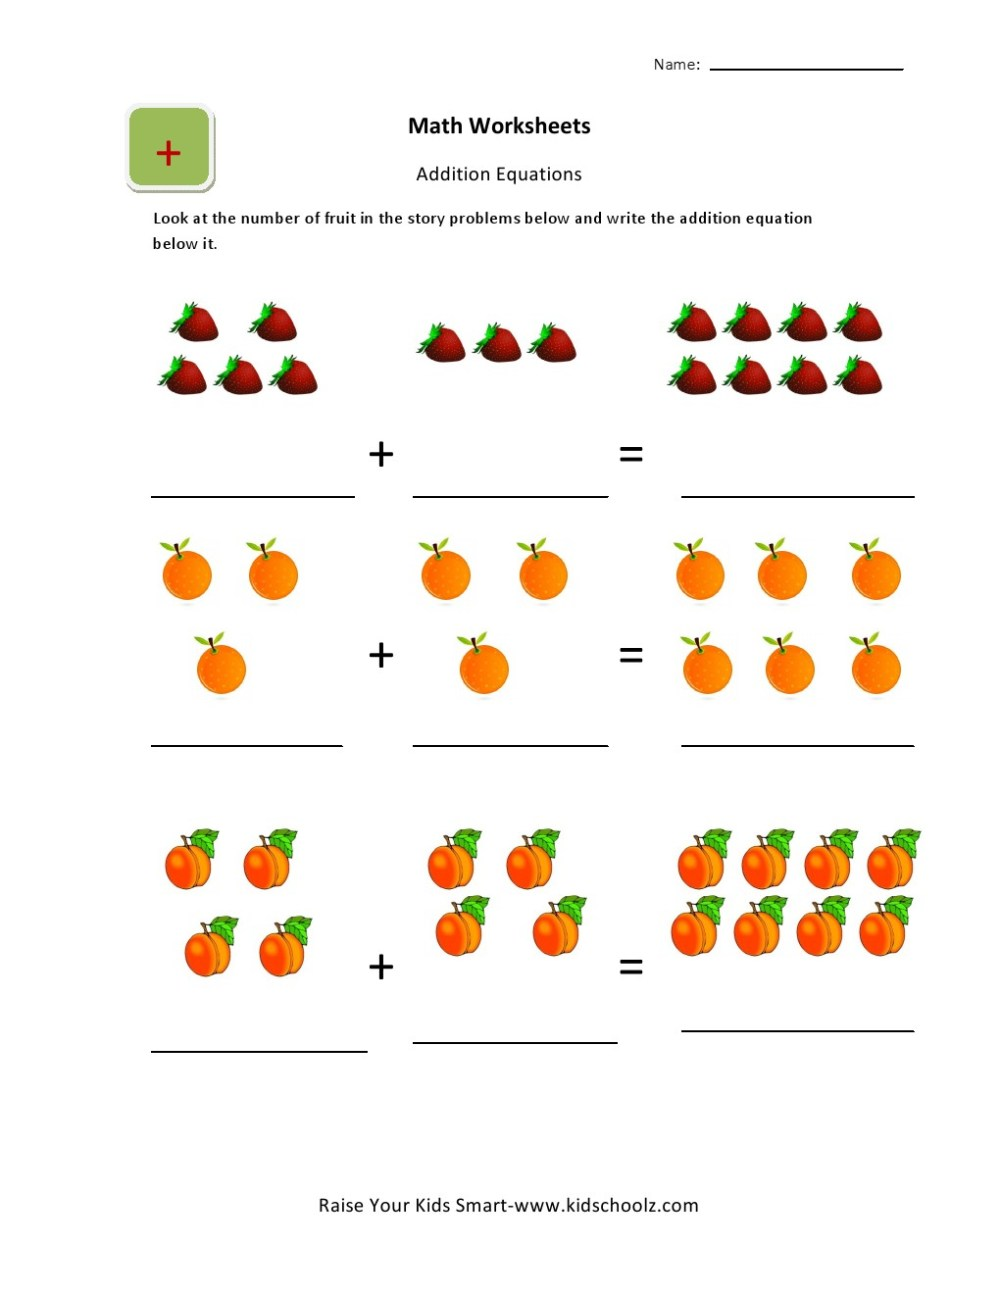 medium resolution of UKG-Basic Picture Addition Worksheets for Kids - Kidschoolz